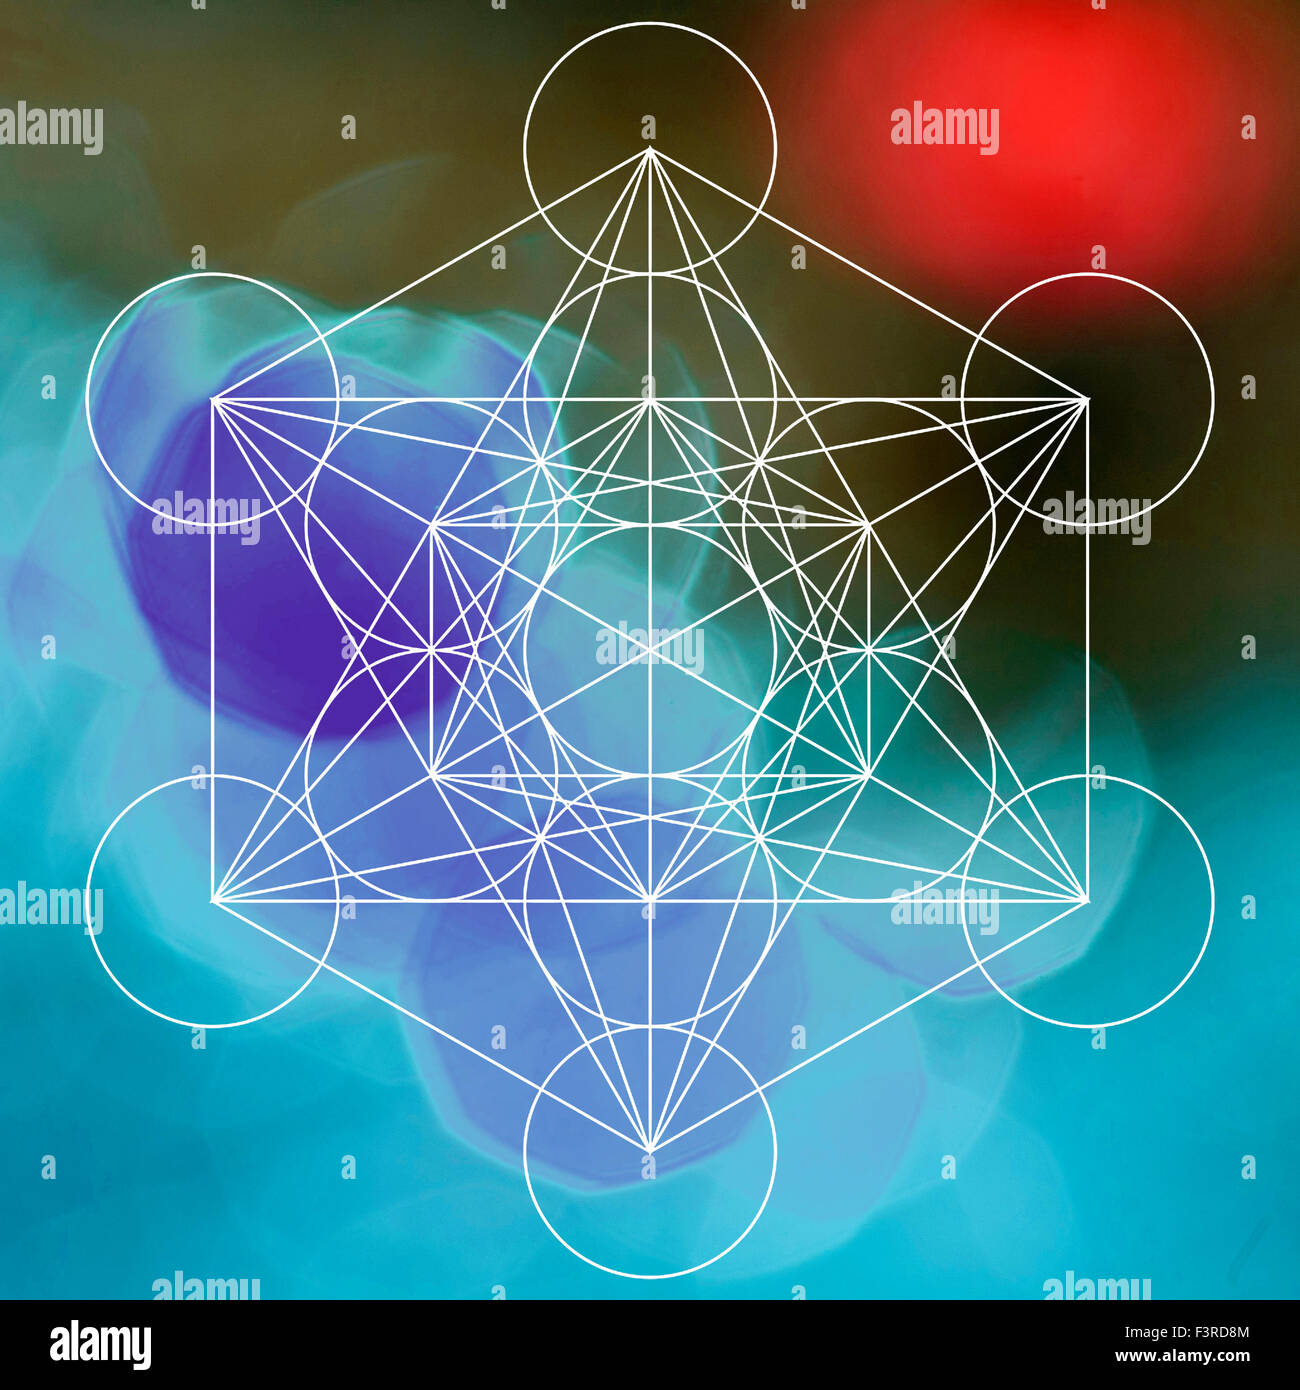 Metatron symbol on the bokeh background - Stock Image